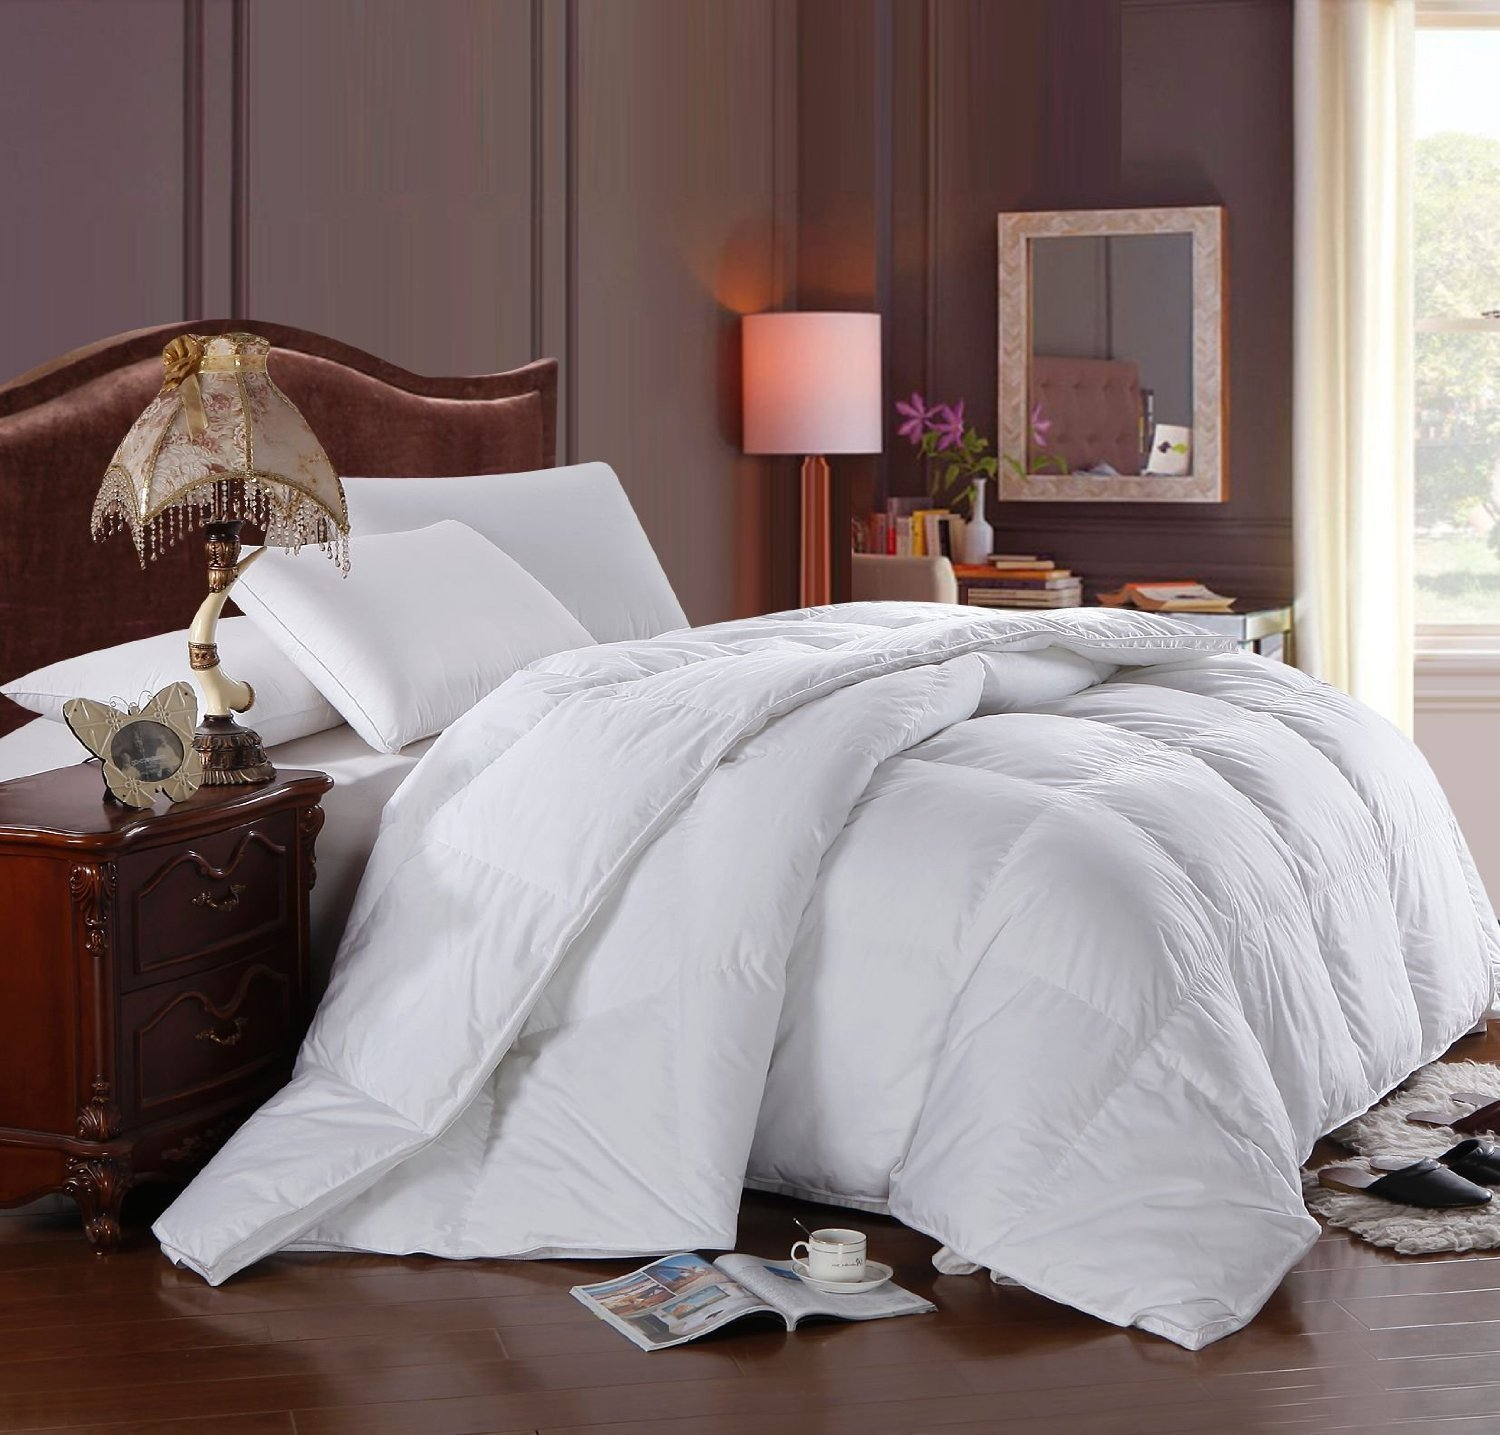 ALL SEASON DOWN COMFORTER, 300 Thread Count 100% Cotton Solid Shell, 600FP, 28 Ounce Down fill, Twin/Twin-Extra-Long